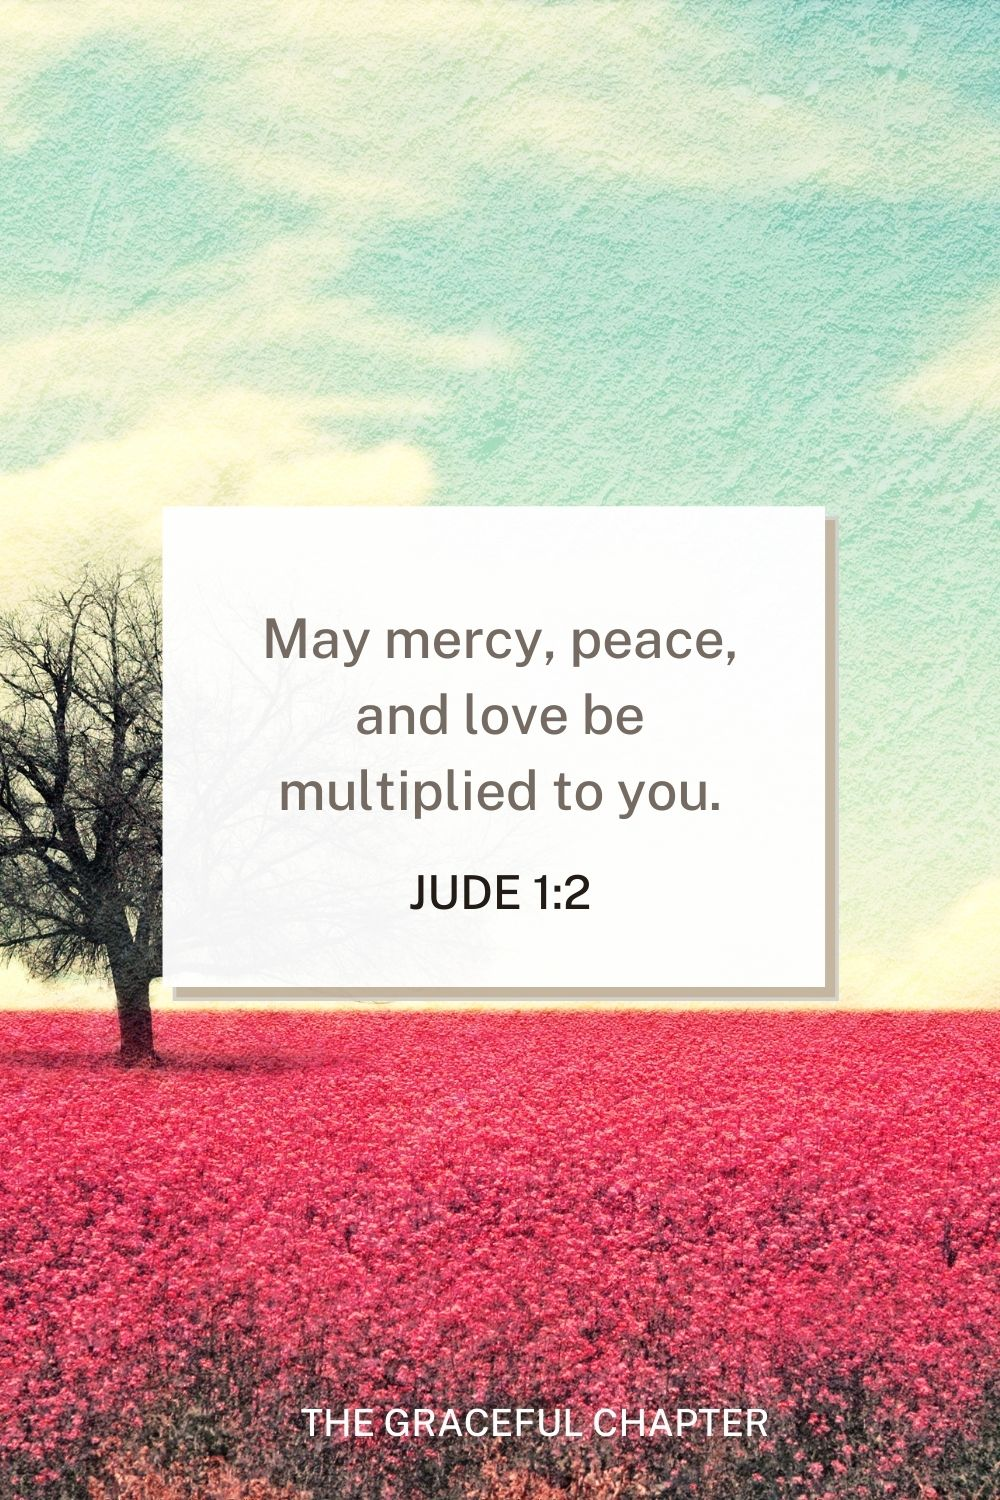 May mercy, peace, and love be multiplied to you. Jude 1:2